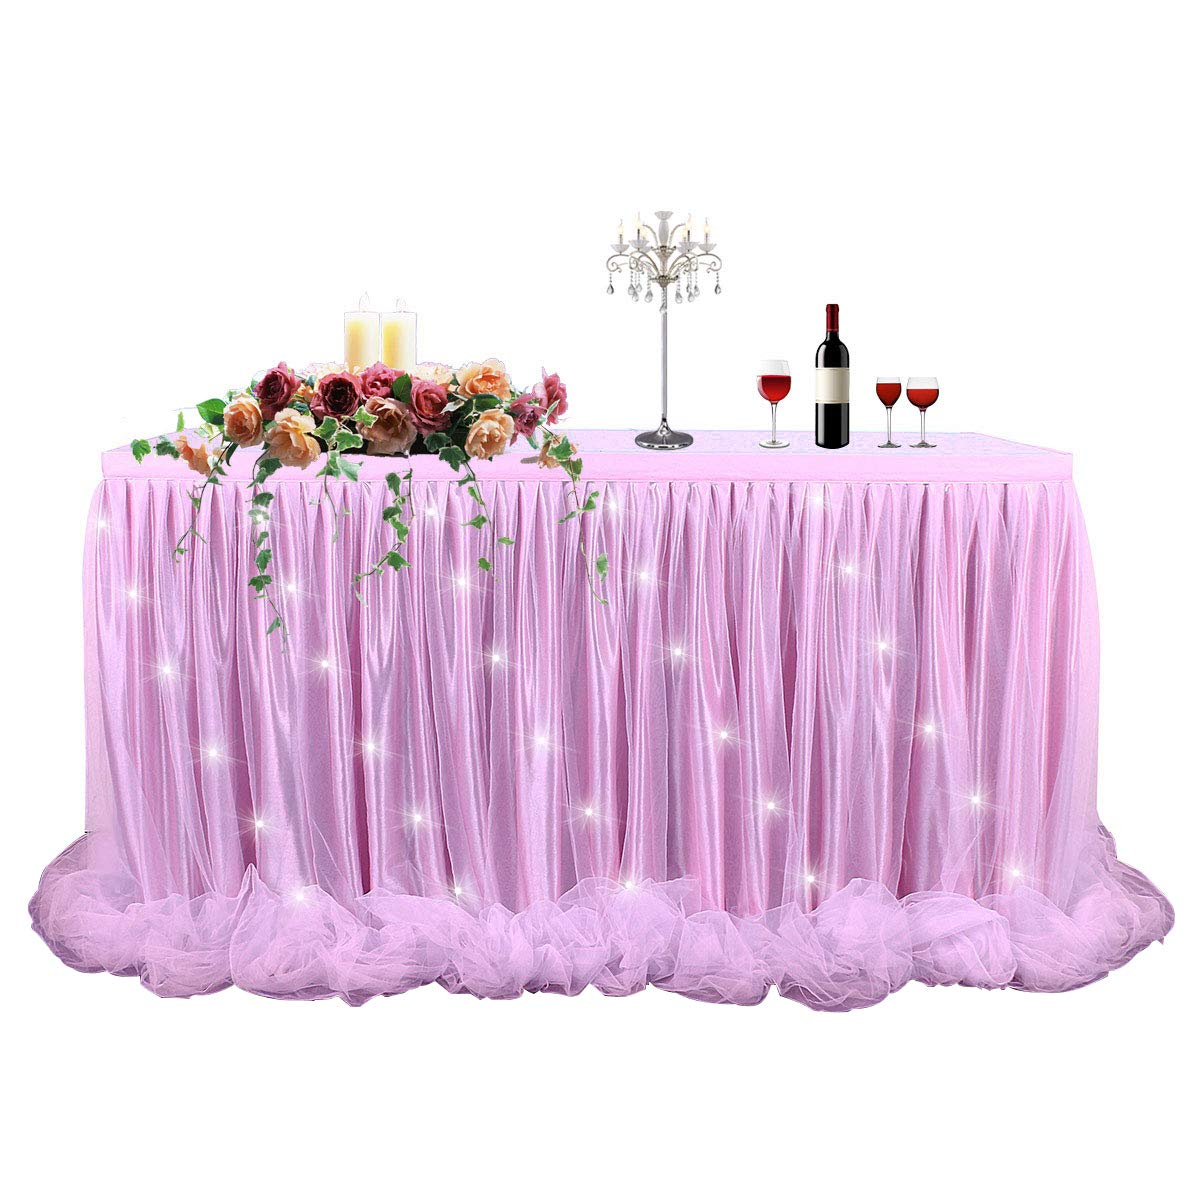 LED Table Skirt 6ft Pink Tulle Table Skirt Tutu Table Skirting for Rectangle or Round Table for Baby Shower Wedding and Birthday Party Decoration (L6(ft)*H 30in)